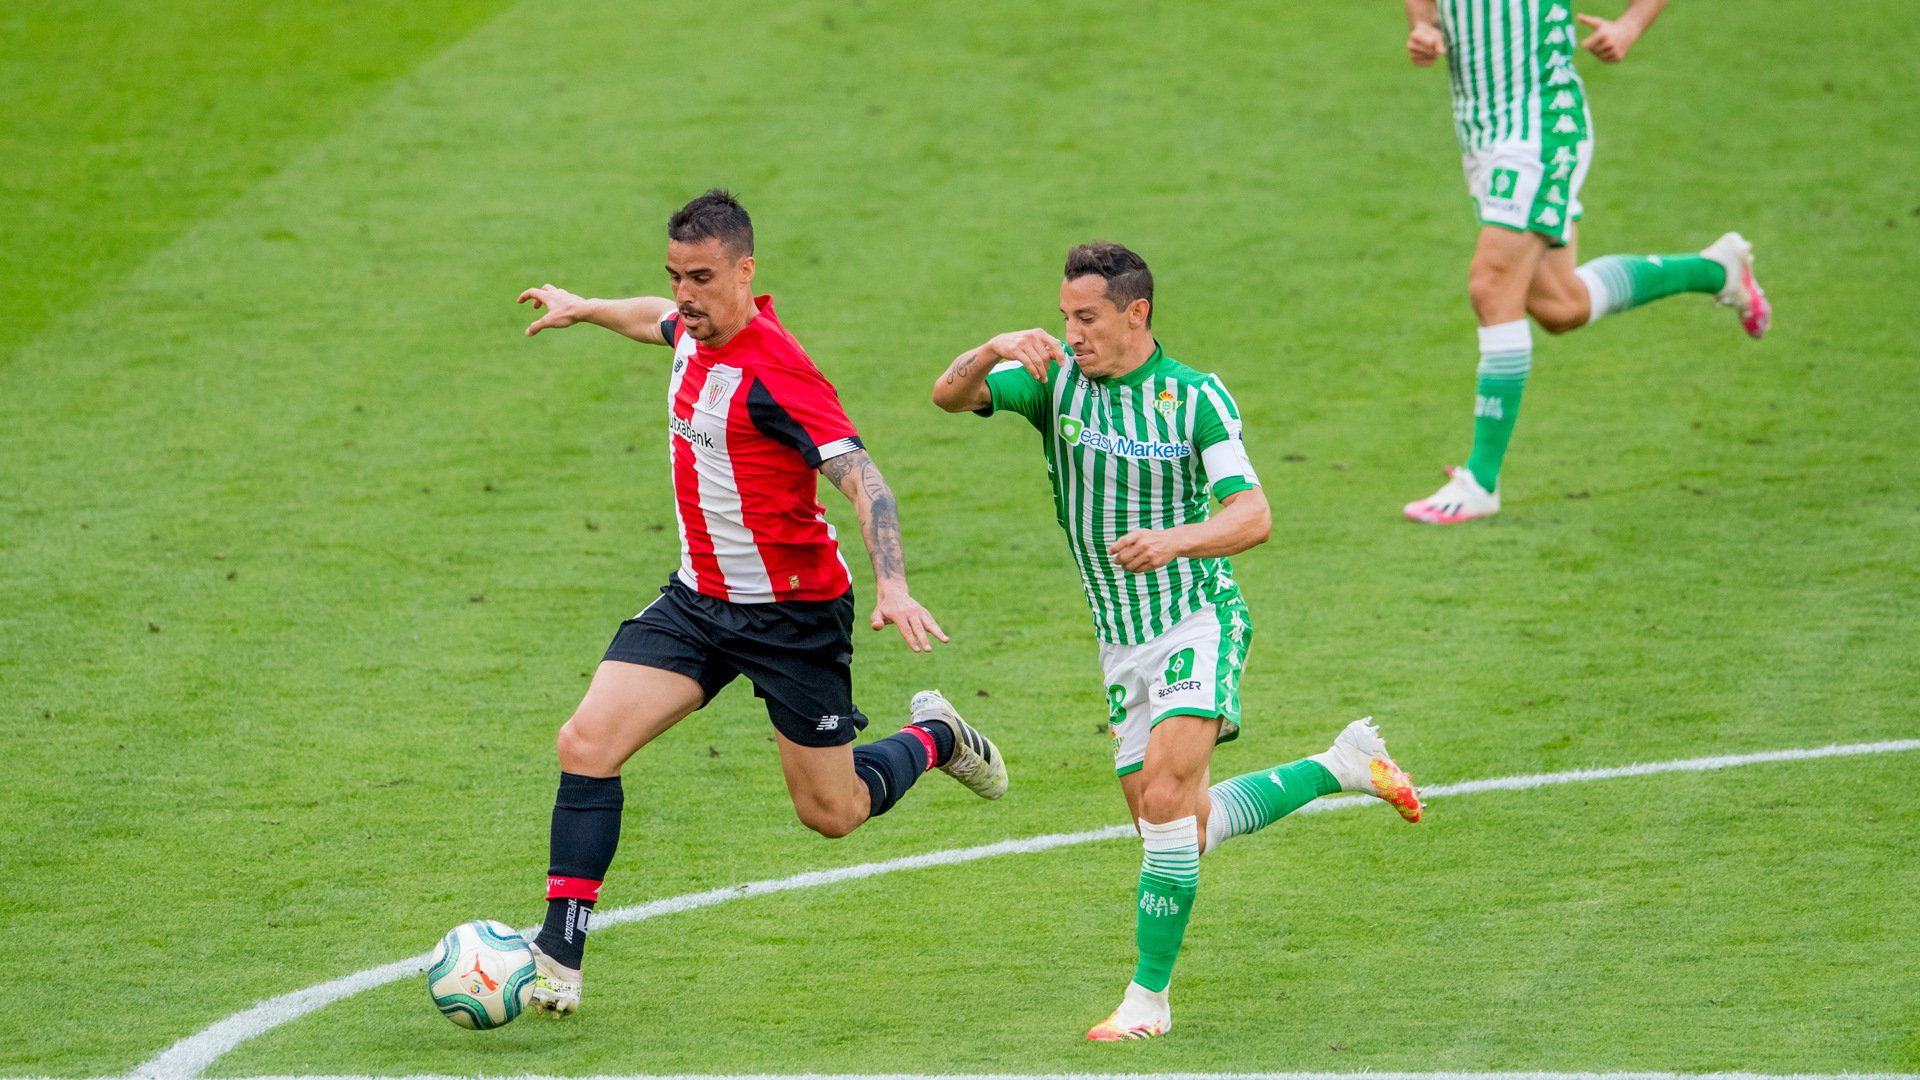 Athletic Club – Real Betis partidaren buletina deskargatu